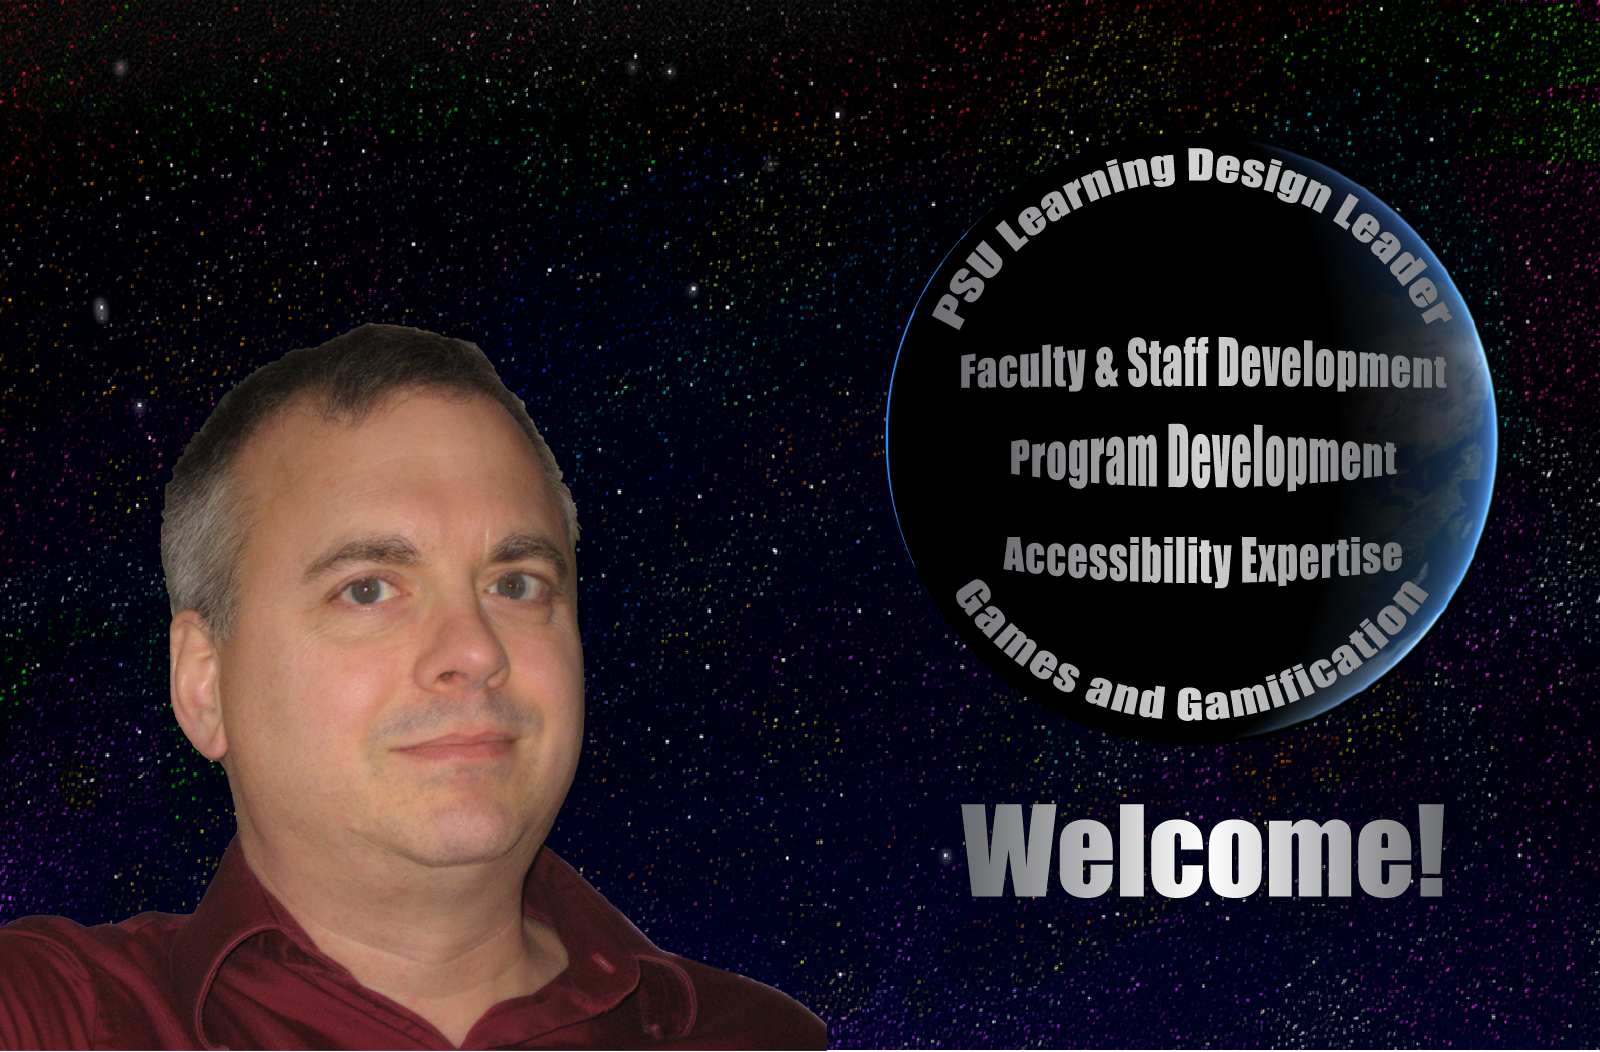 Brett Bixler's head. List of expertise. PSU Learning Design, program, faculty and staff development, accessibility, games and gamification.